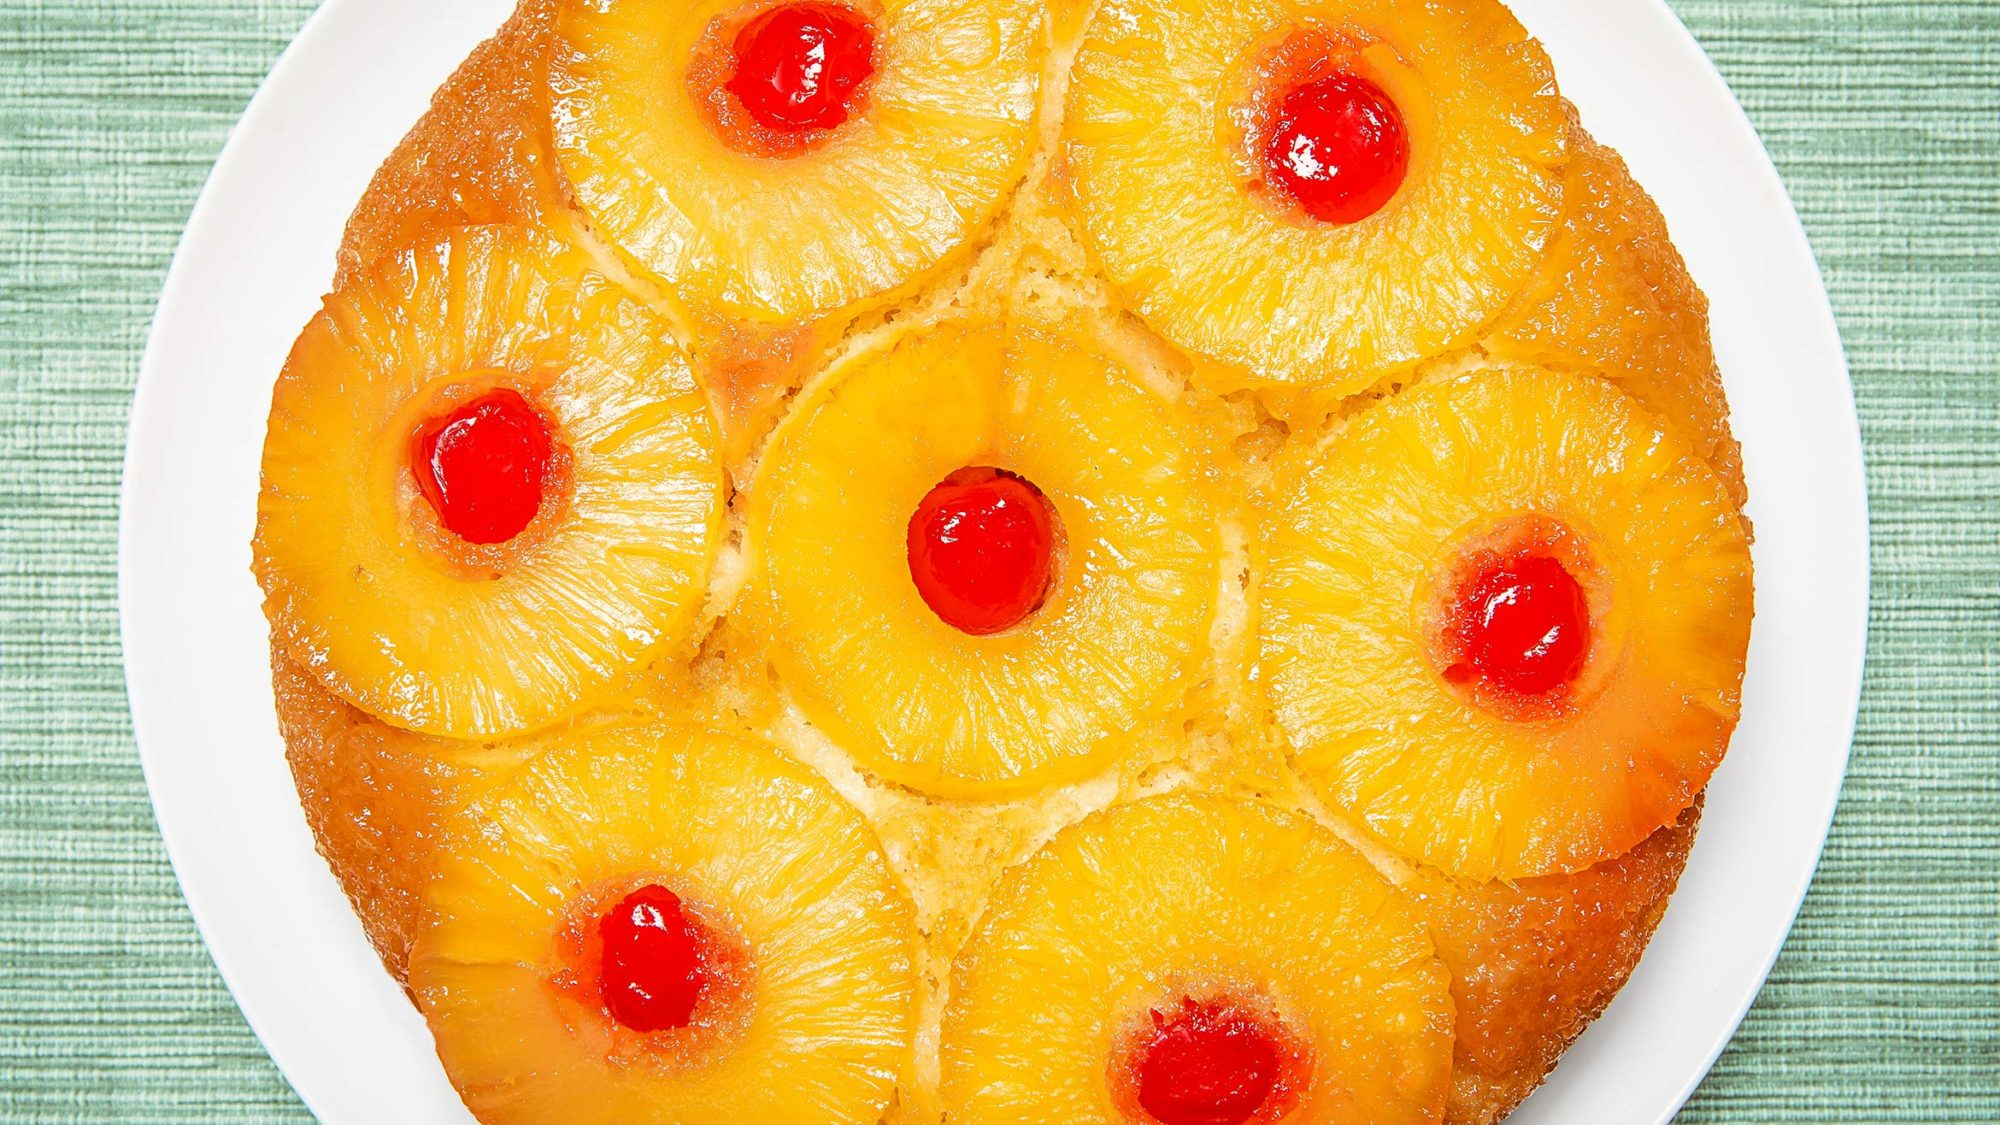 Article-Pineapple-Upside-Down-Cake-Recipe